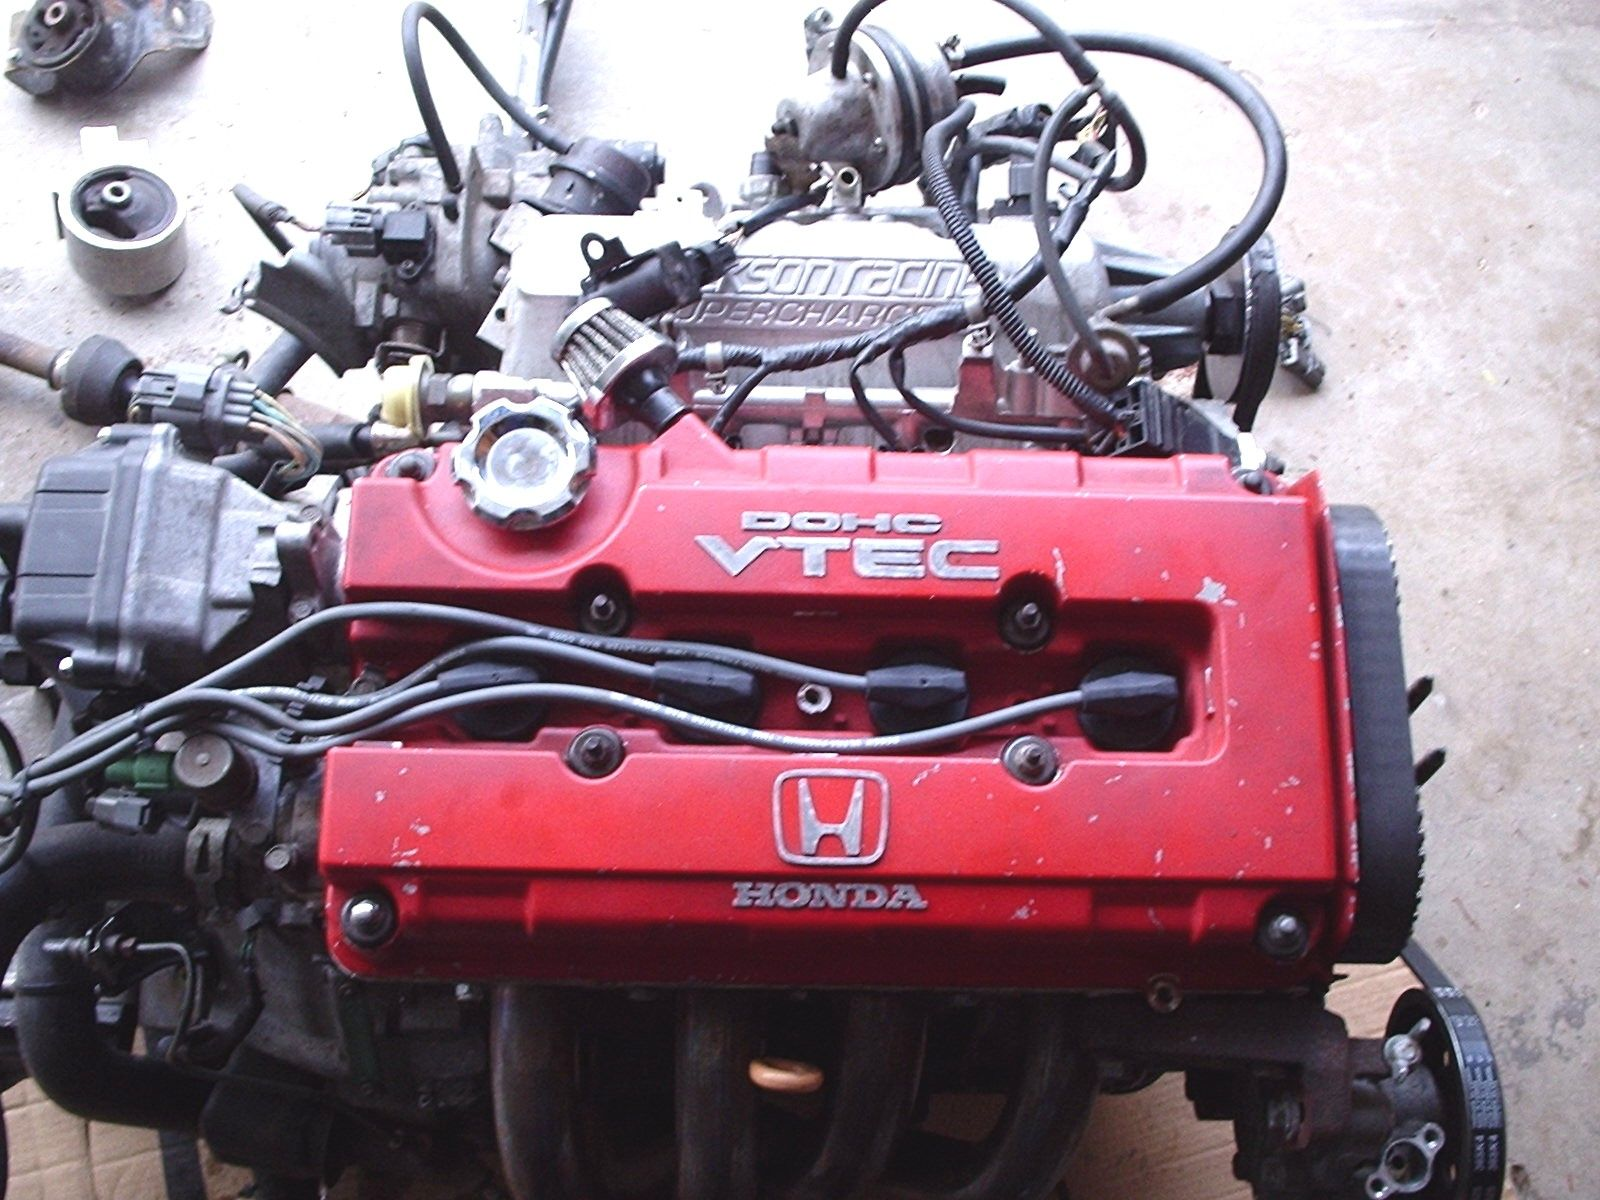 b18c1 motor with supercharger for sale